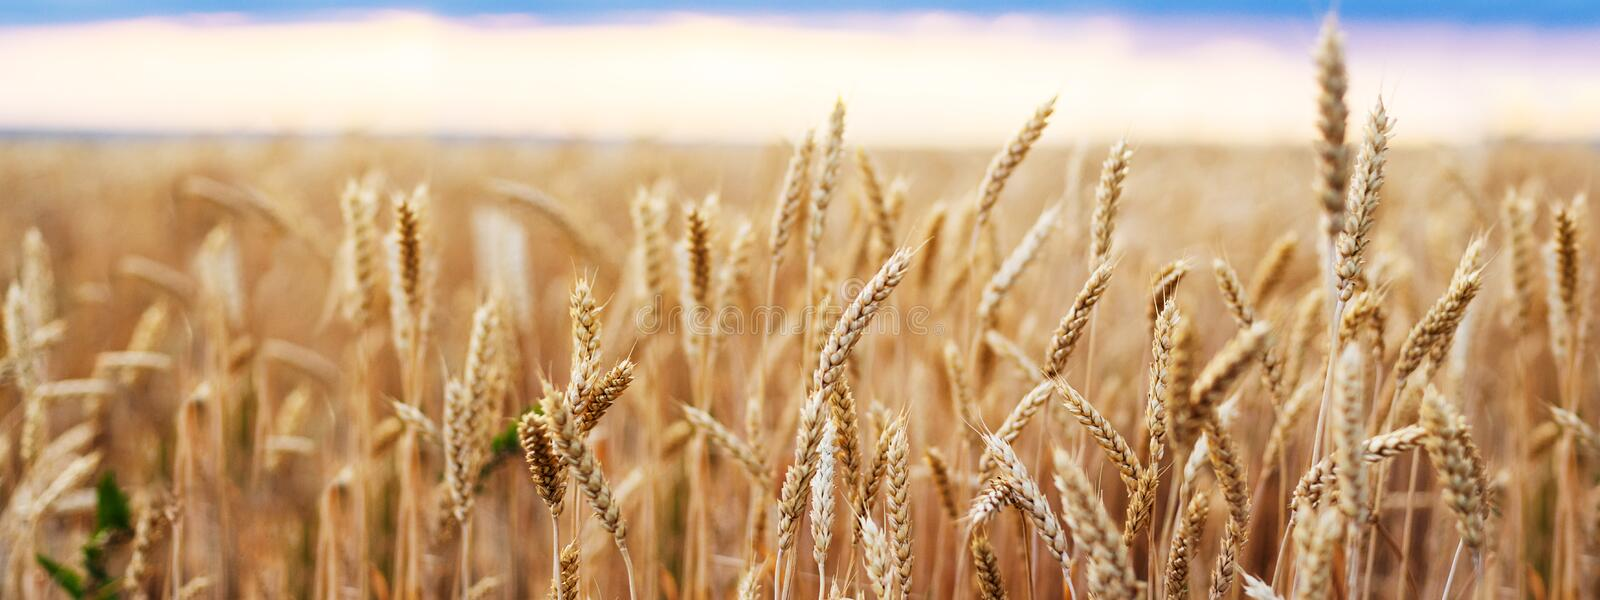 Wheat Field Ears Golden Wheat Close royalty free stock photography